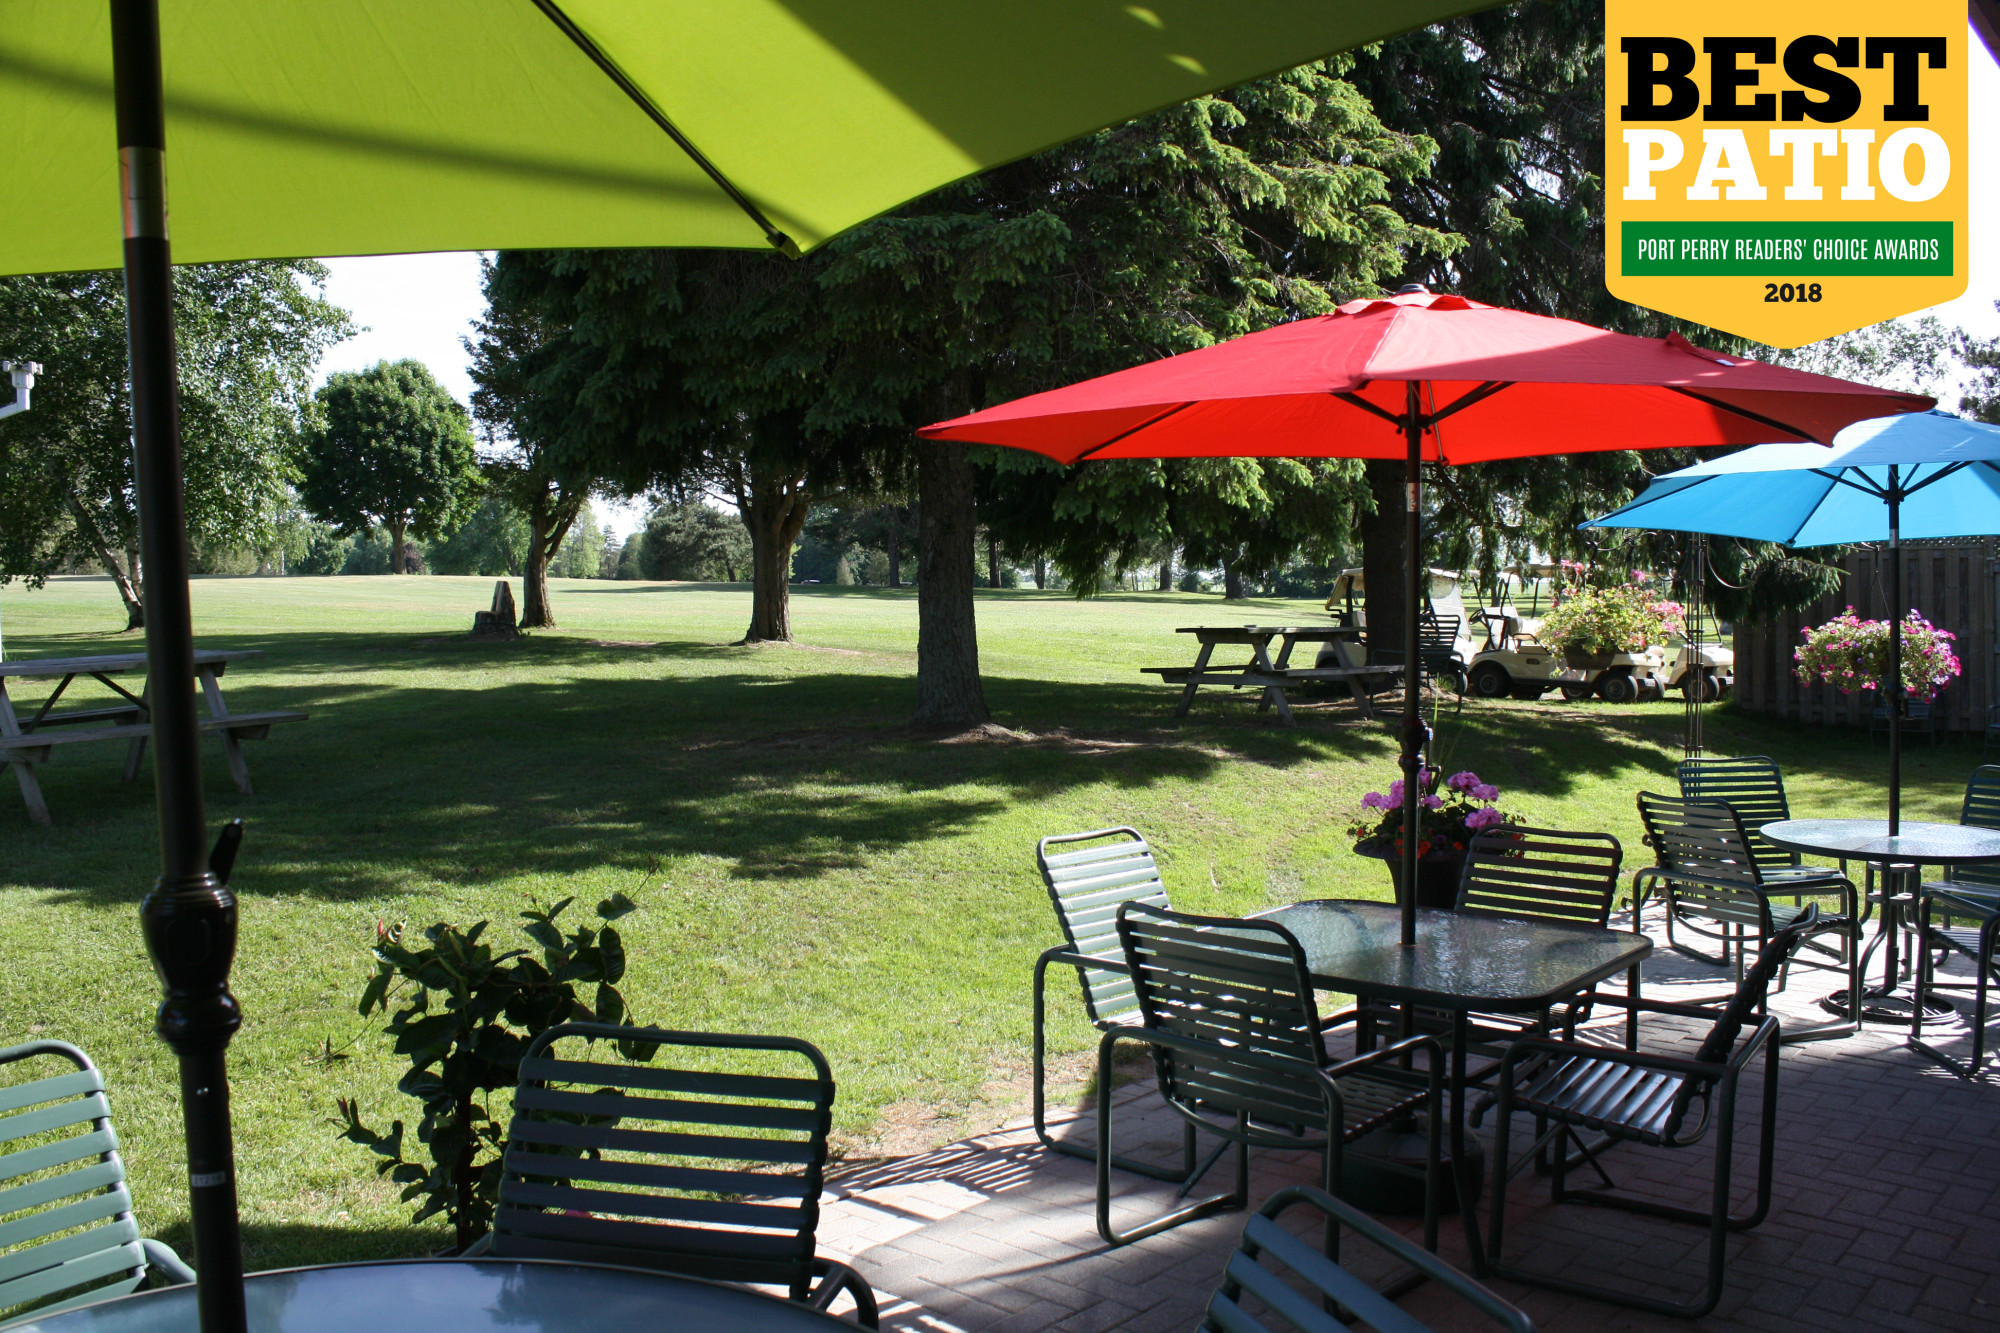 Relax on our Award-Winning Patio!